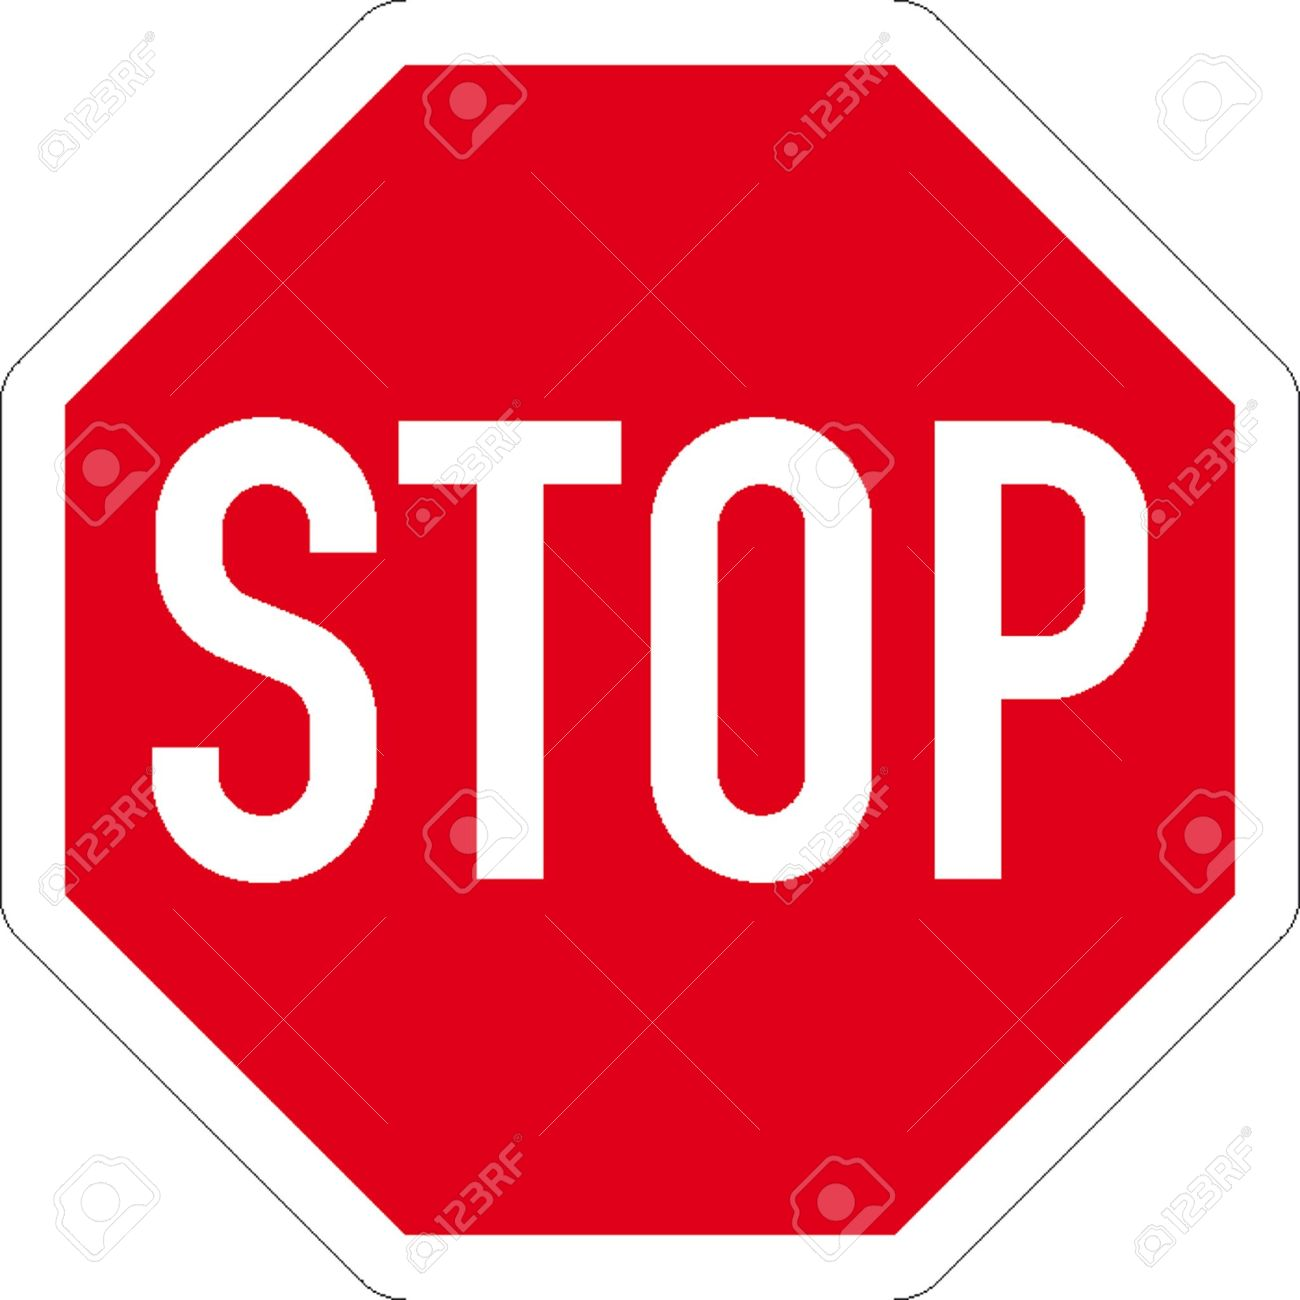 Emergency stop icon clipart emergency off - Emergency Stop Traffic Signs Illustration